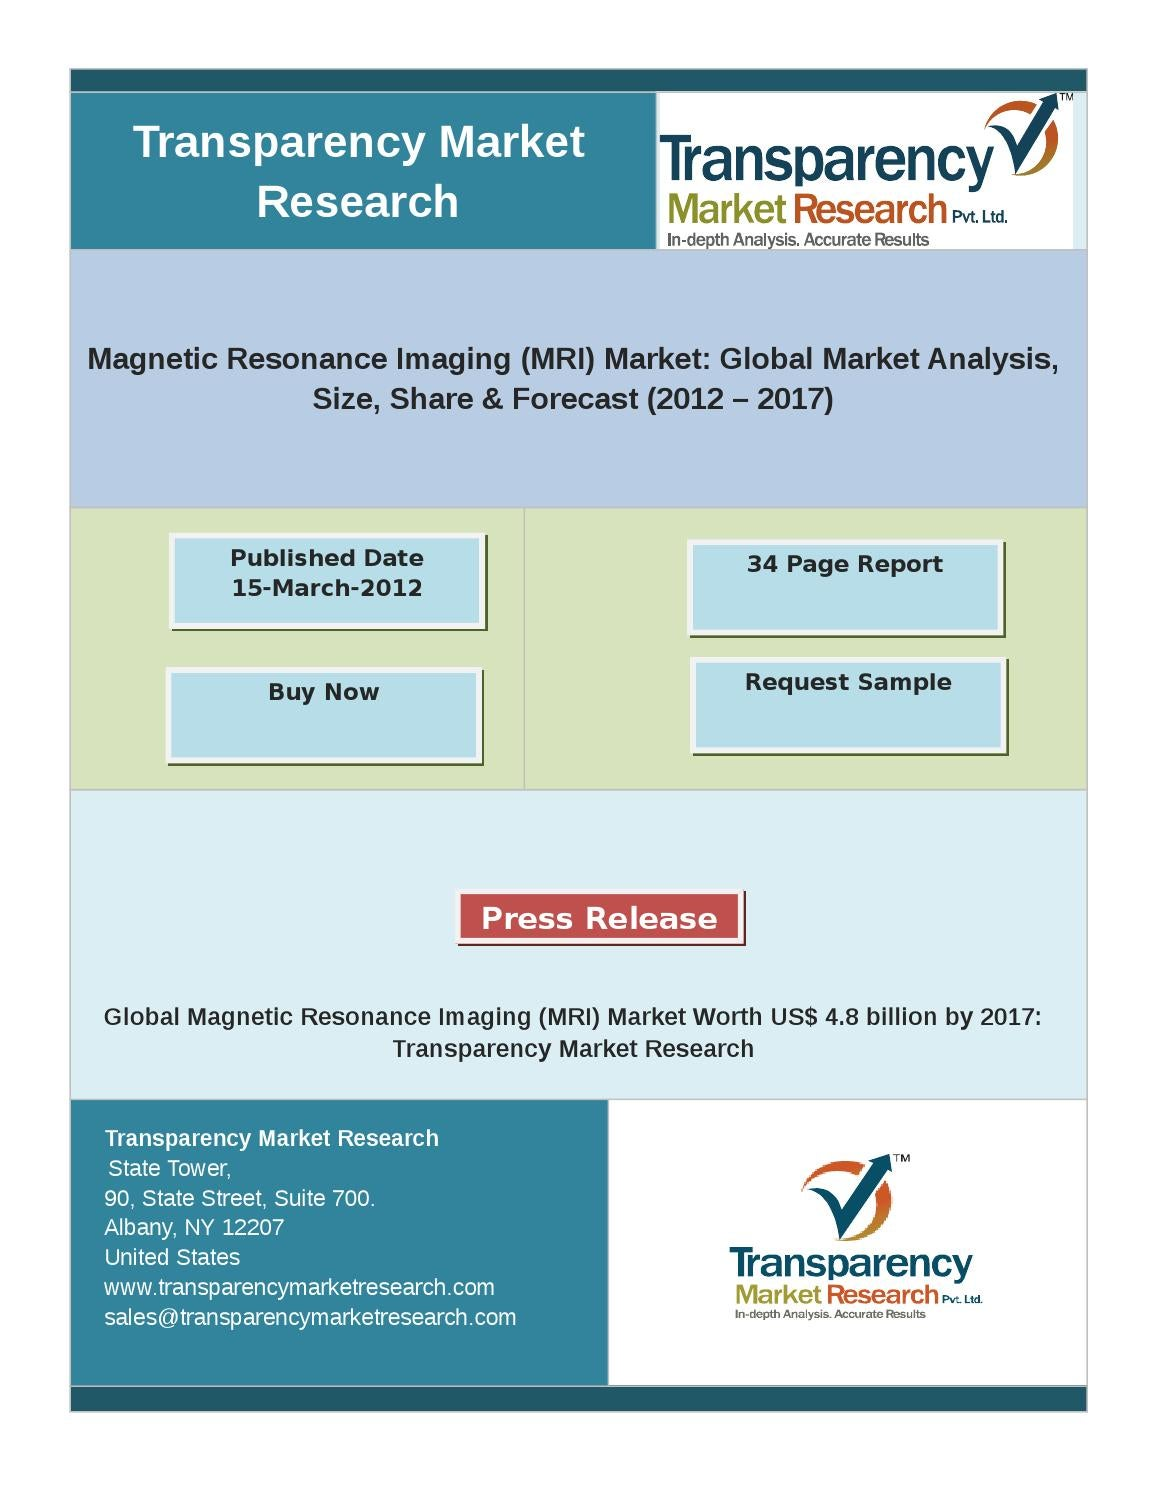 an analysis of global markets Get latest market analysis on ukreuterscom reuters uk provides latest articles  on global market analysis, stock market analysis, financial market analysis and.